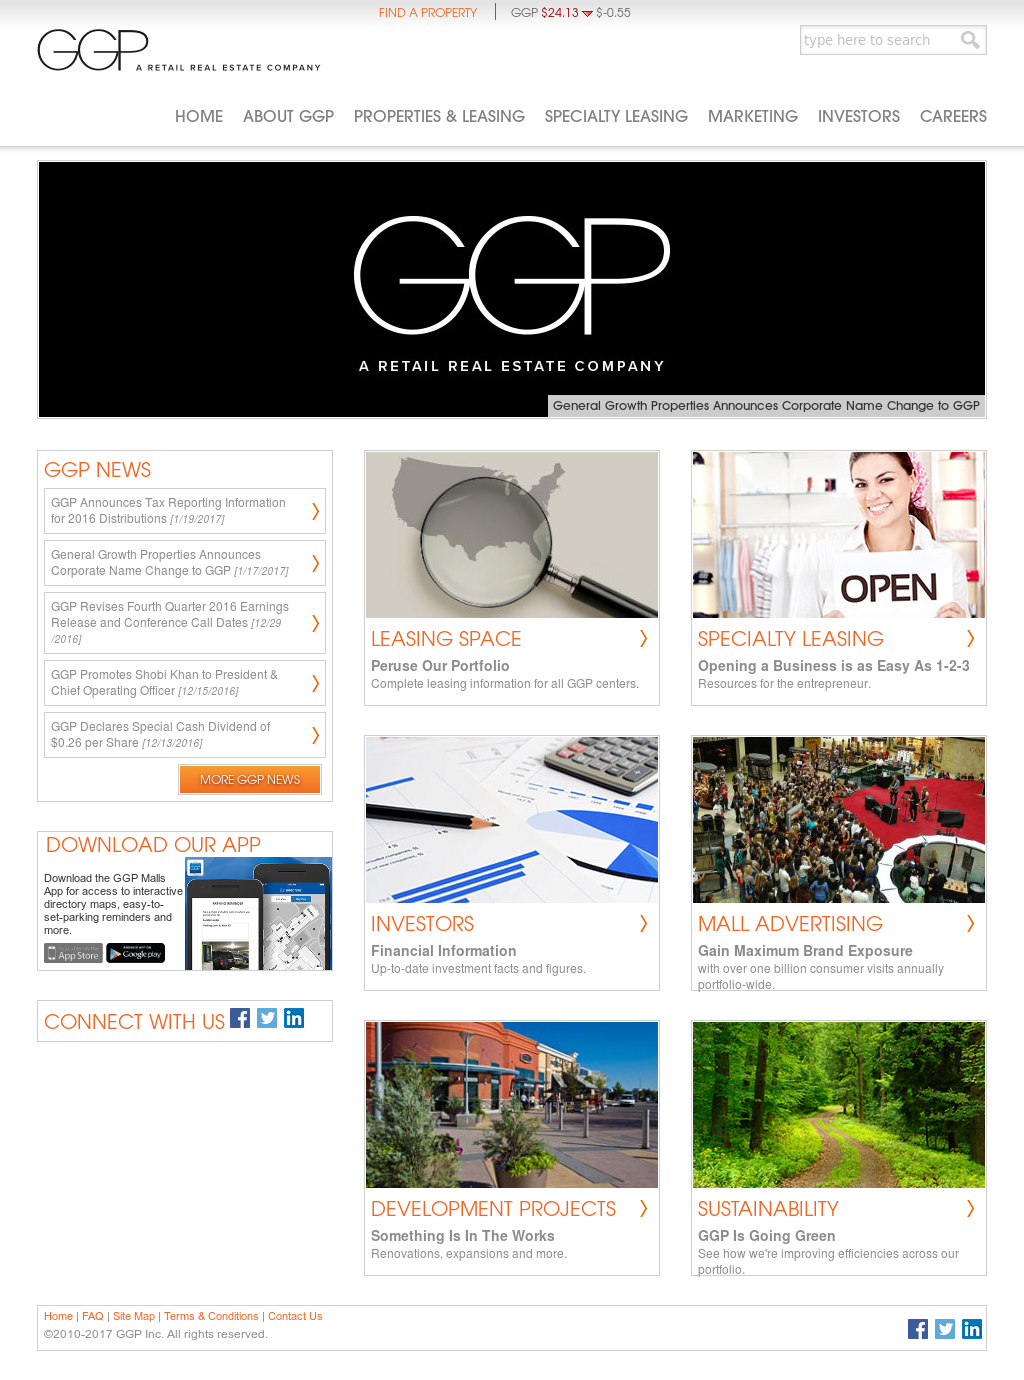 Ggp S Competitors Revenue Number Of Employees Funding Acquisitions News Owler Company Profile